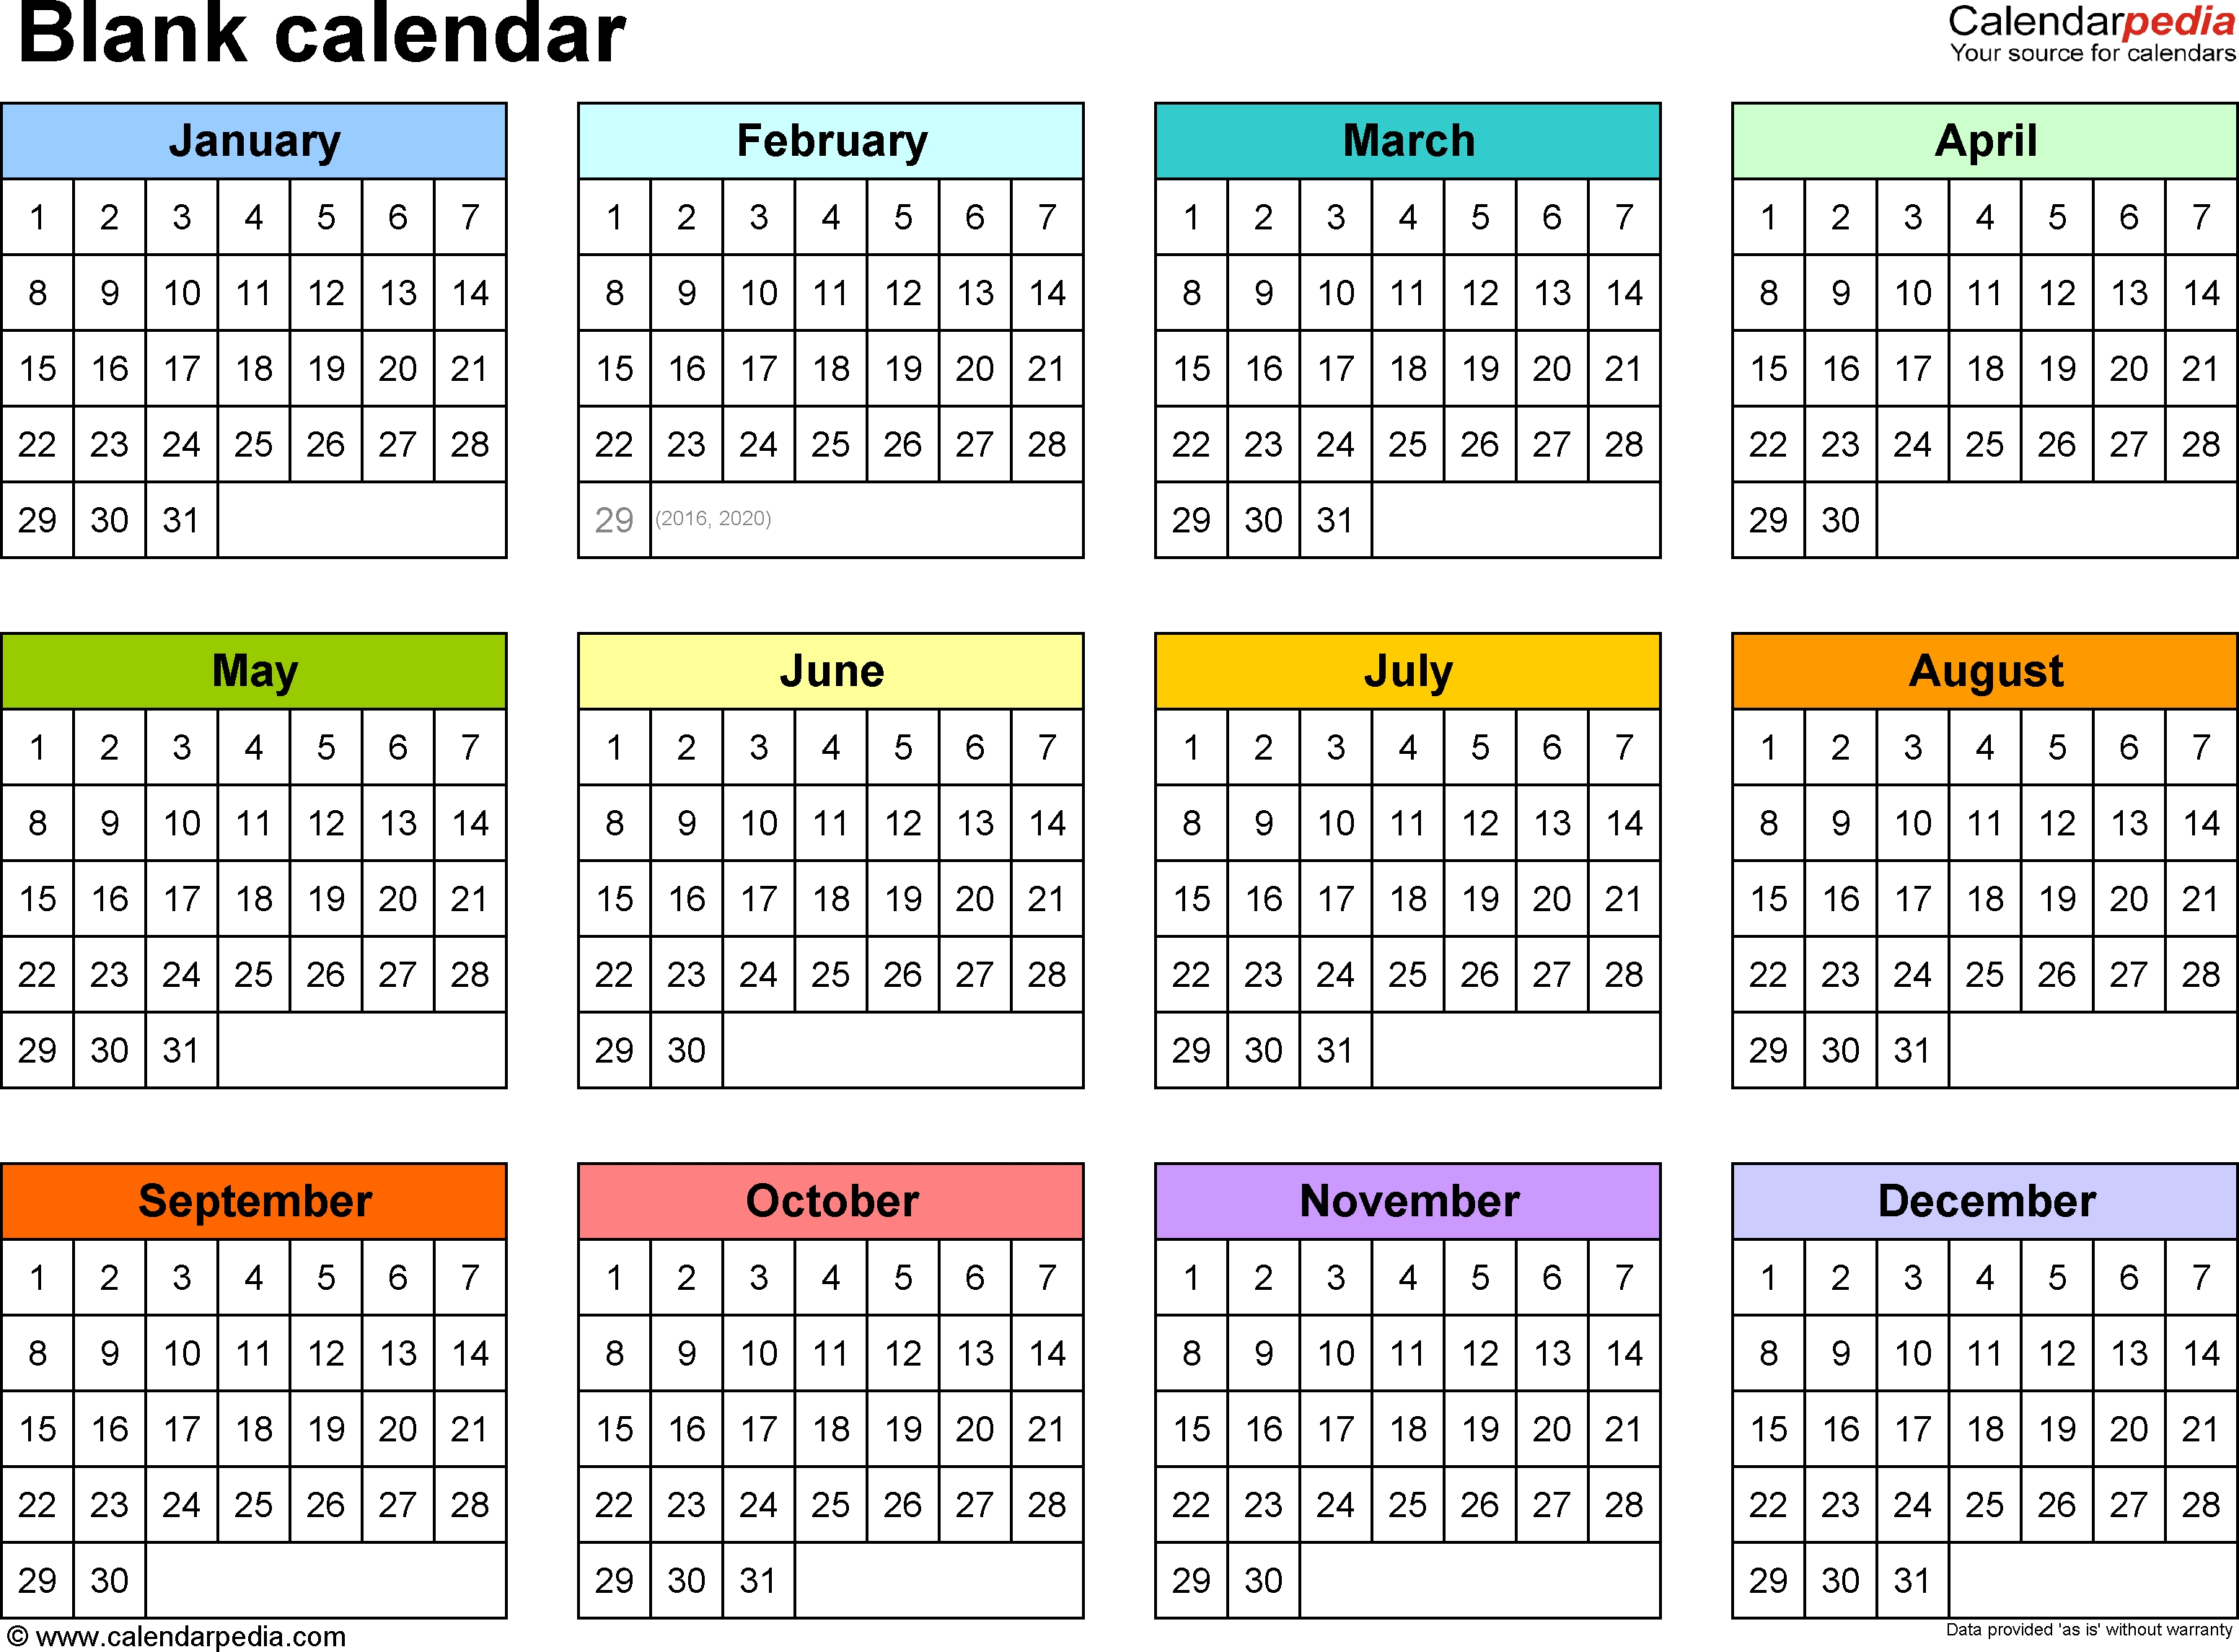 Blank Calendar - 9 Free Printable Microsoft Word Templates intended for Blank Year At A Glance Calendar Template